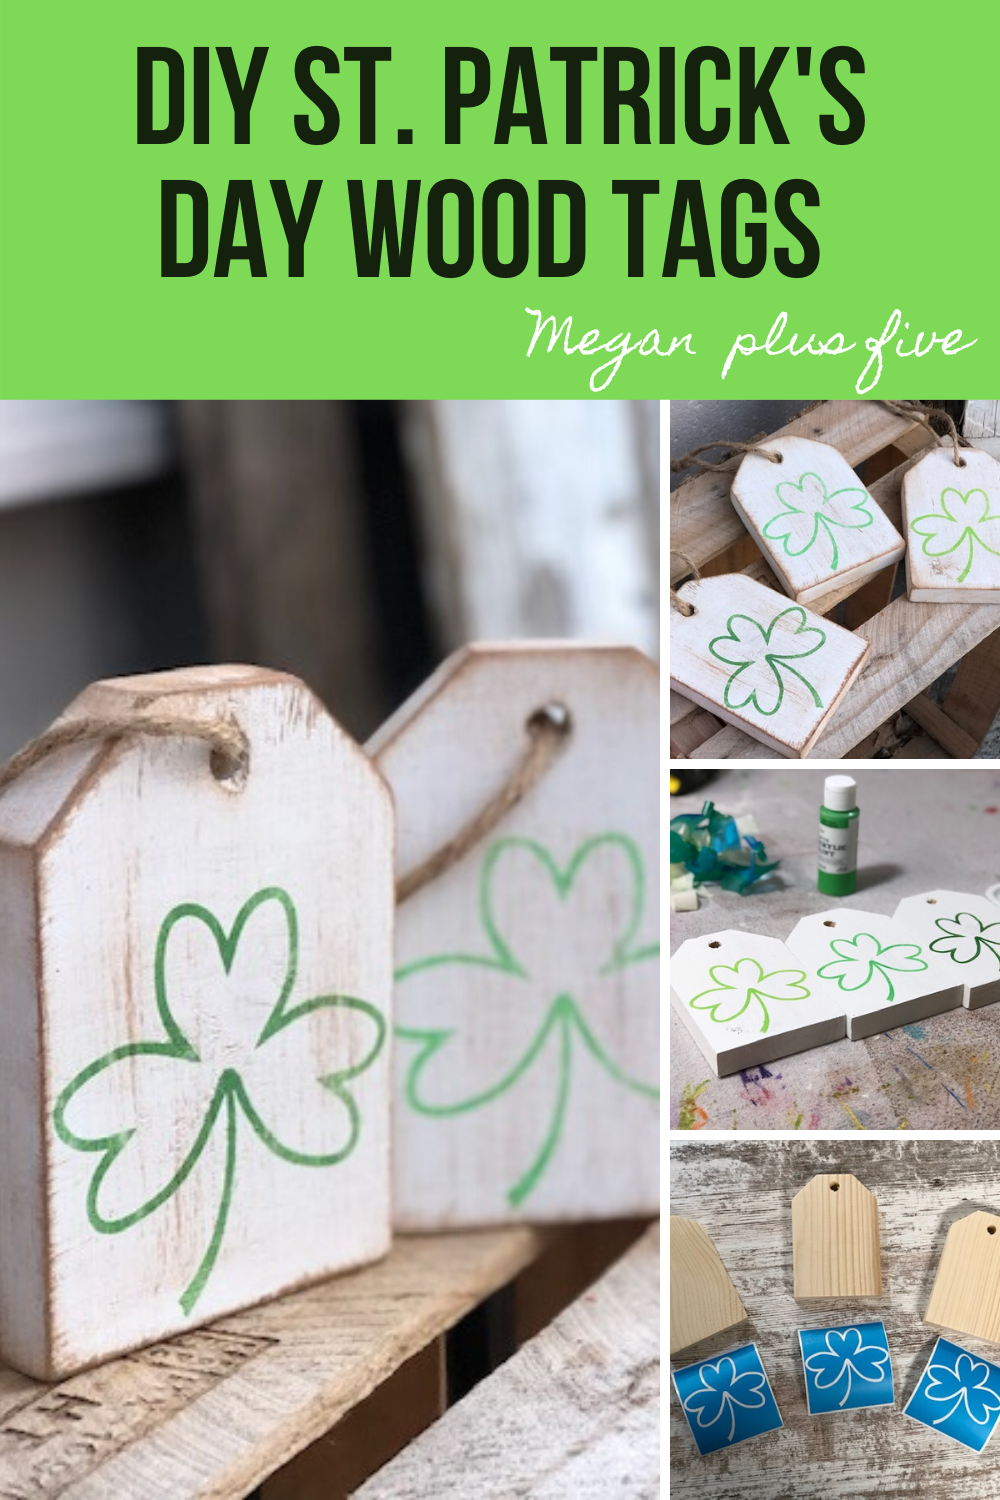 DIY St. Patrick's Day wood tags, how to paint mini wood signs. Using Ryobi tools and a Cricut  to create handmade wood signs